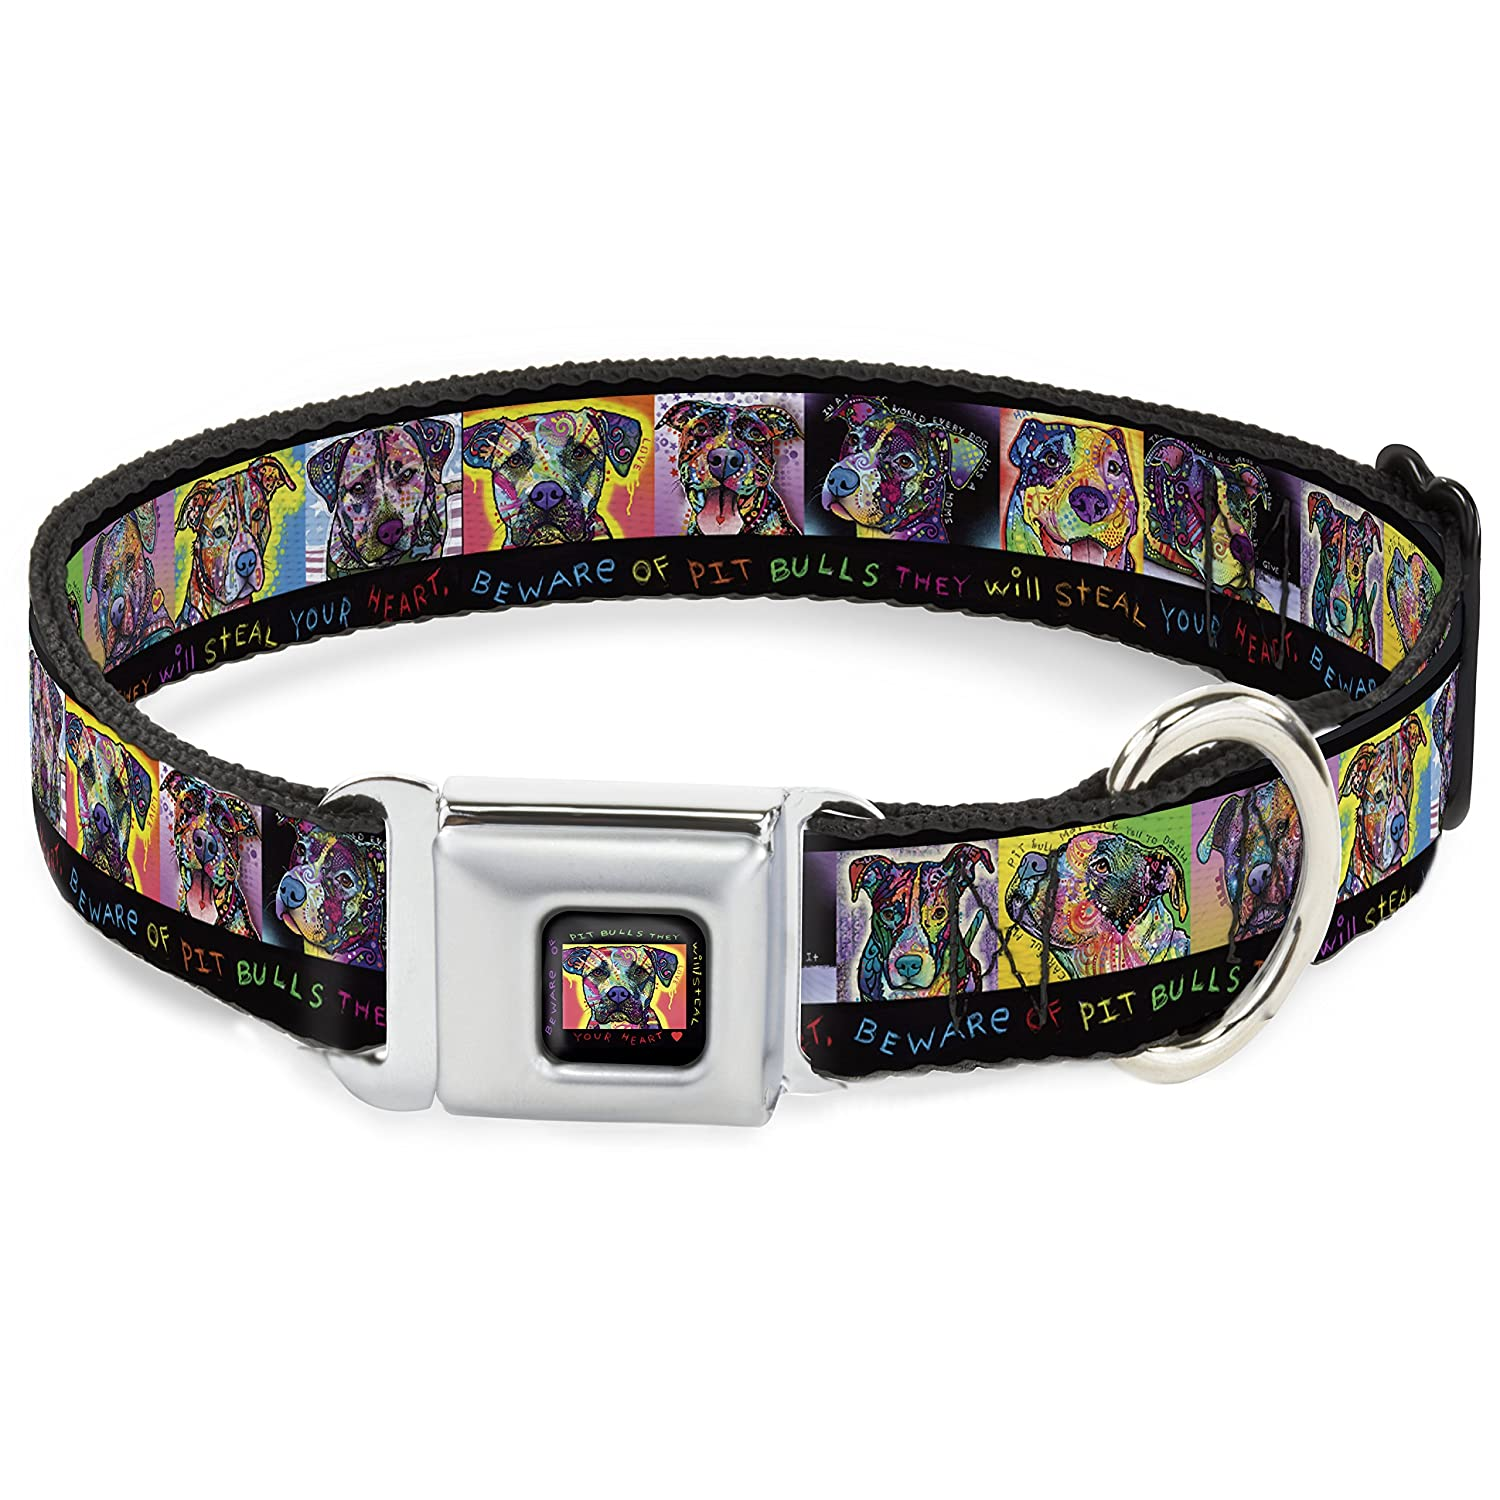 WIDE-MEDIUM Fits 16-23 Inch (1.5 Inch WIDE) Buckle-Down Dc-Wal002-Wm They Will Steal Your Heart Dog Collar, Wide-Medium, Black Multi color